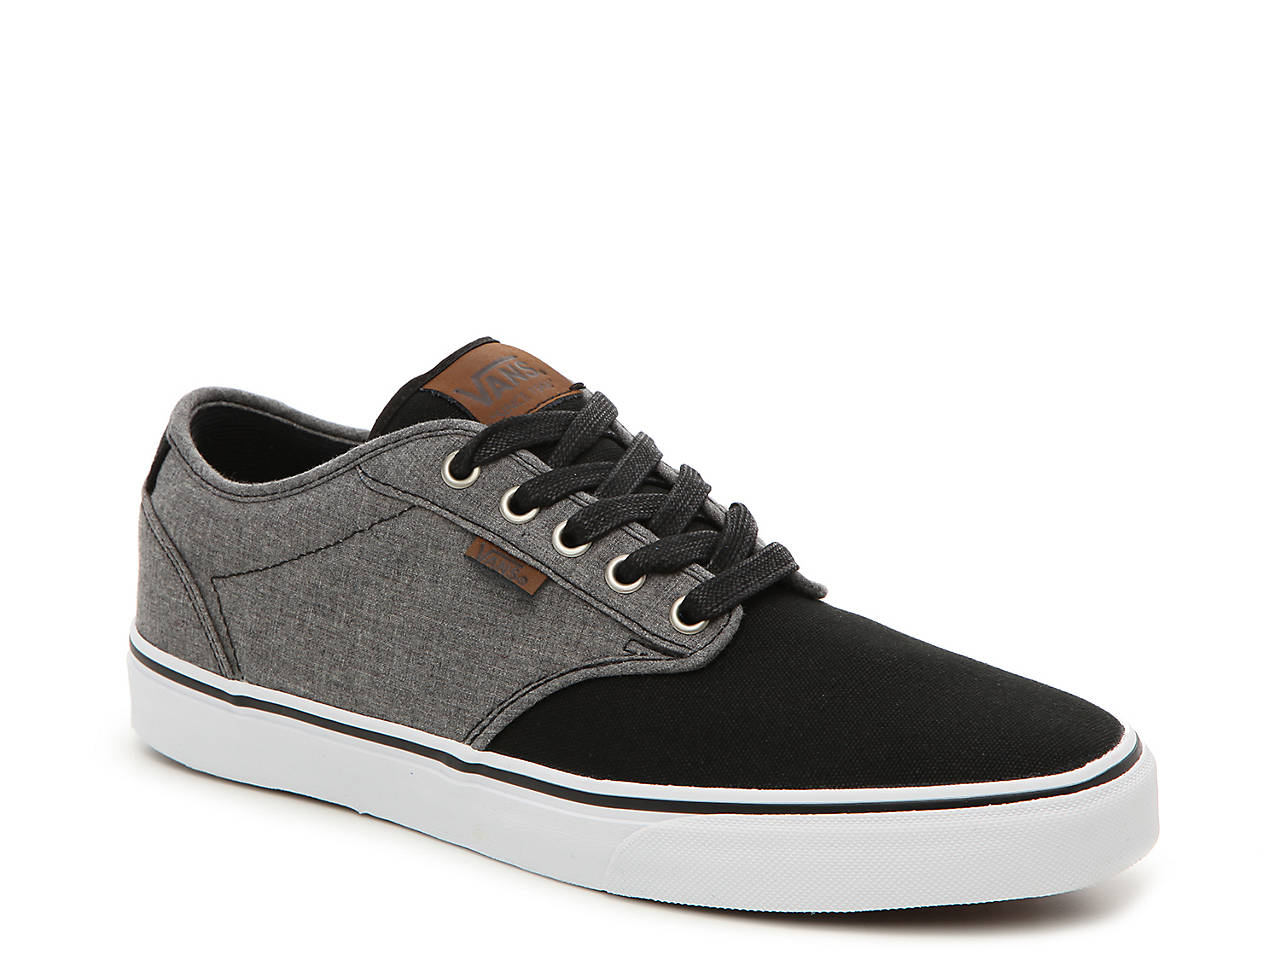 Vans Atwood Deluxe Sneaker - Men s Men s Shoes  00512327f